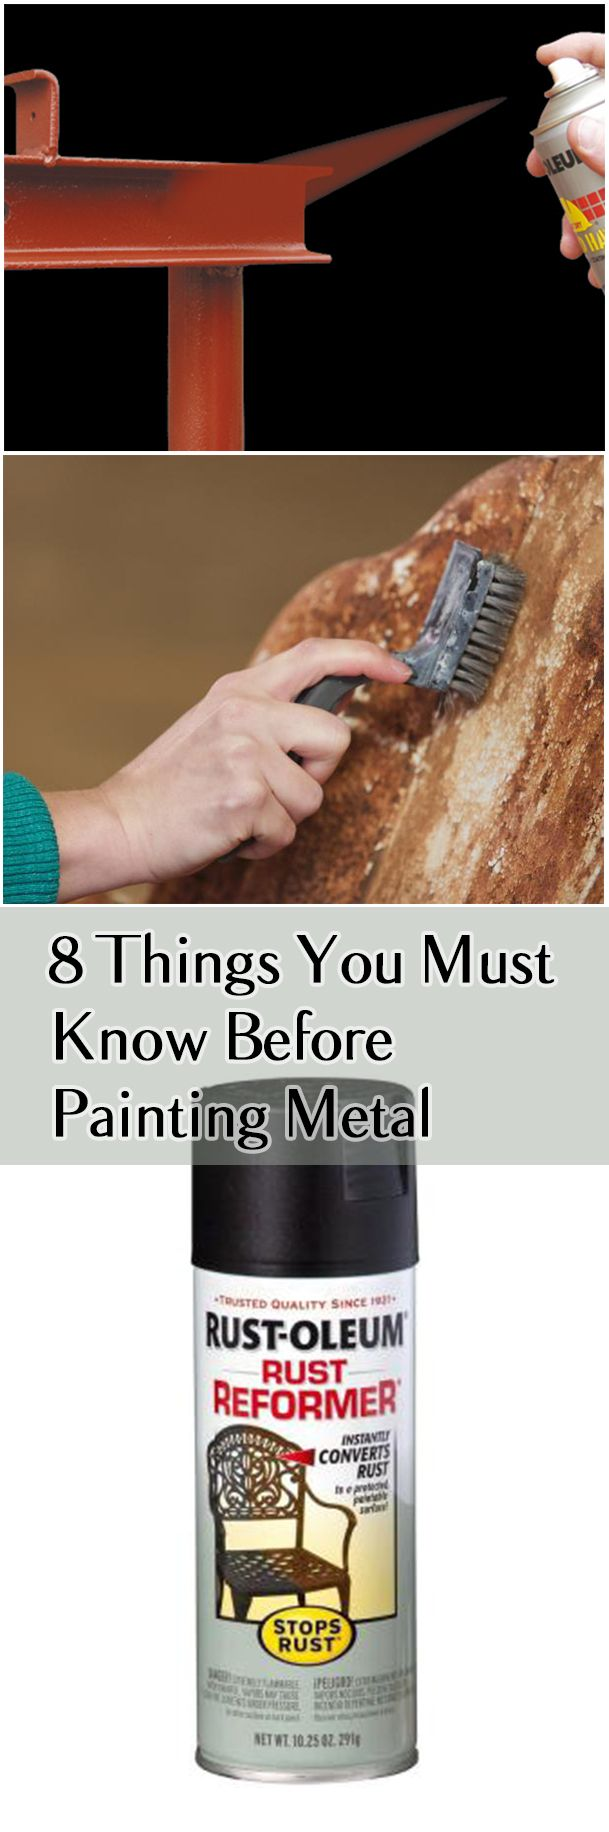 Tips and tricks for painting metal- the do's and don'ts that will make your metal painting project a success!